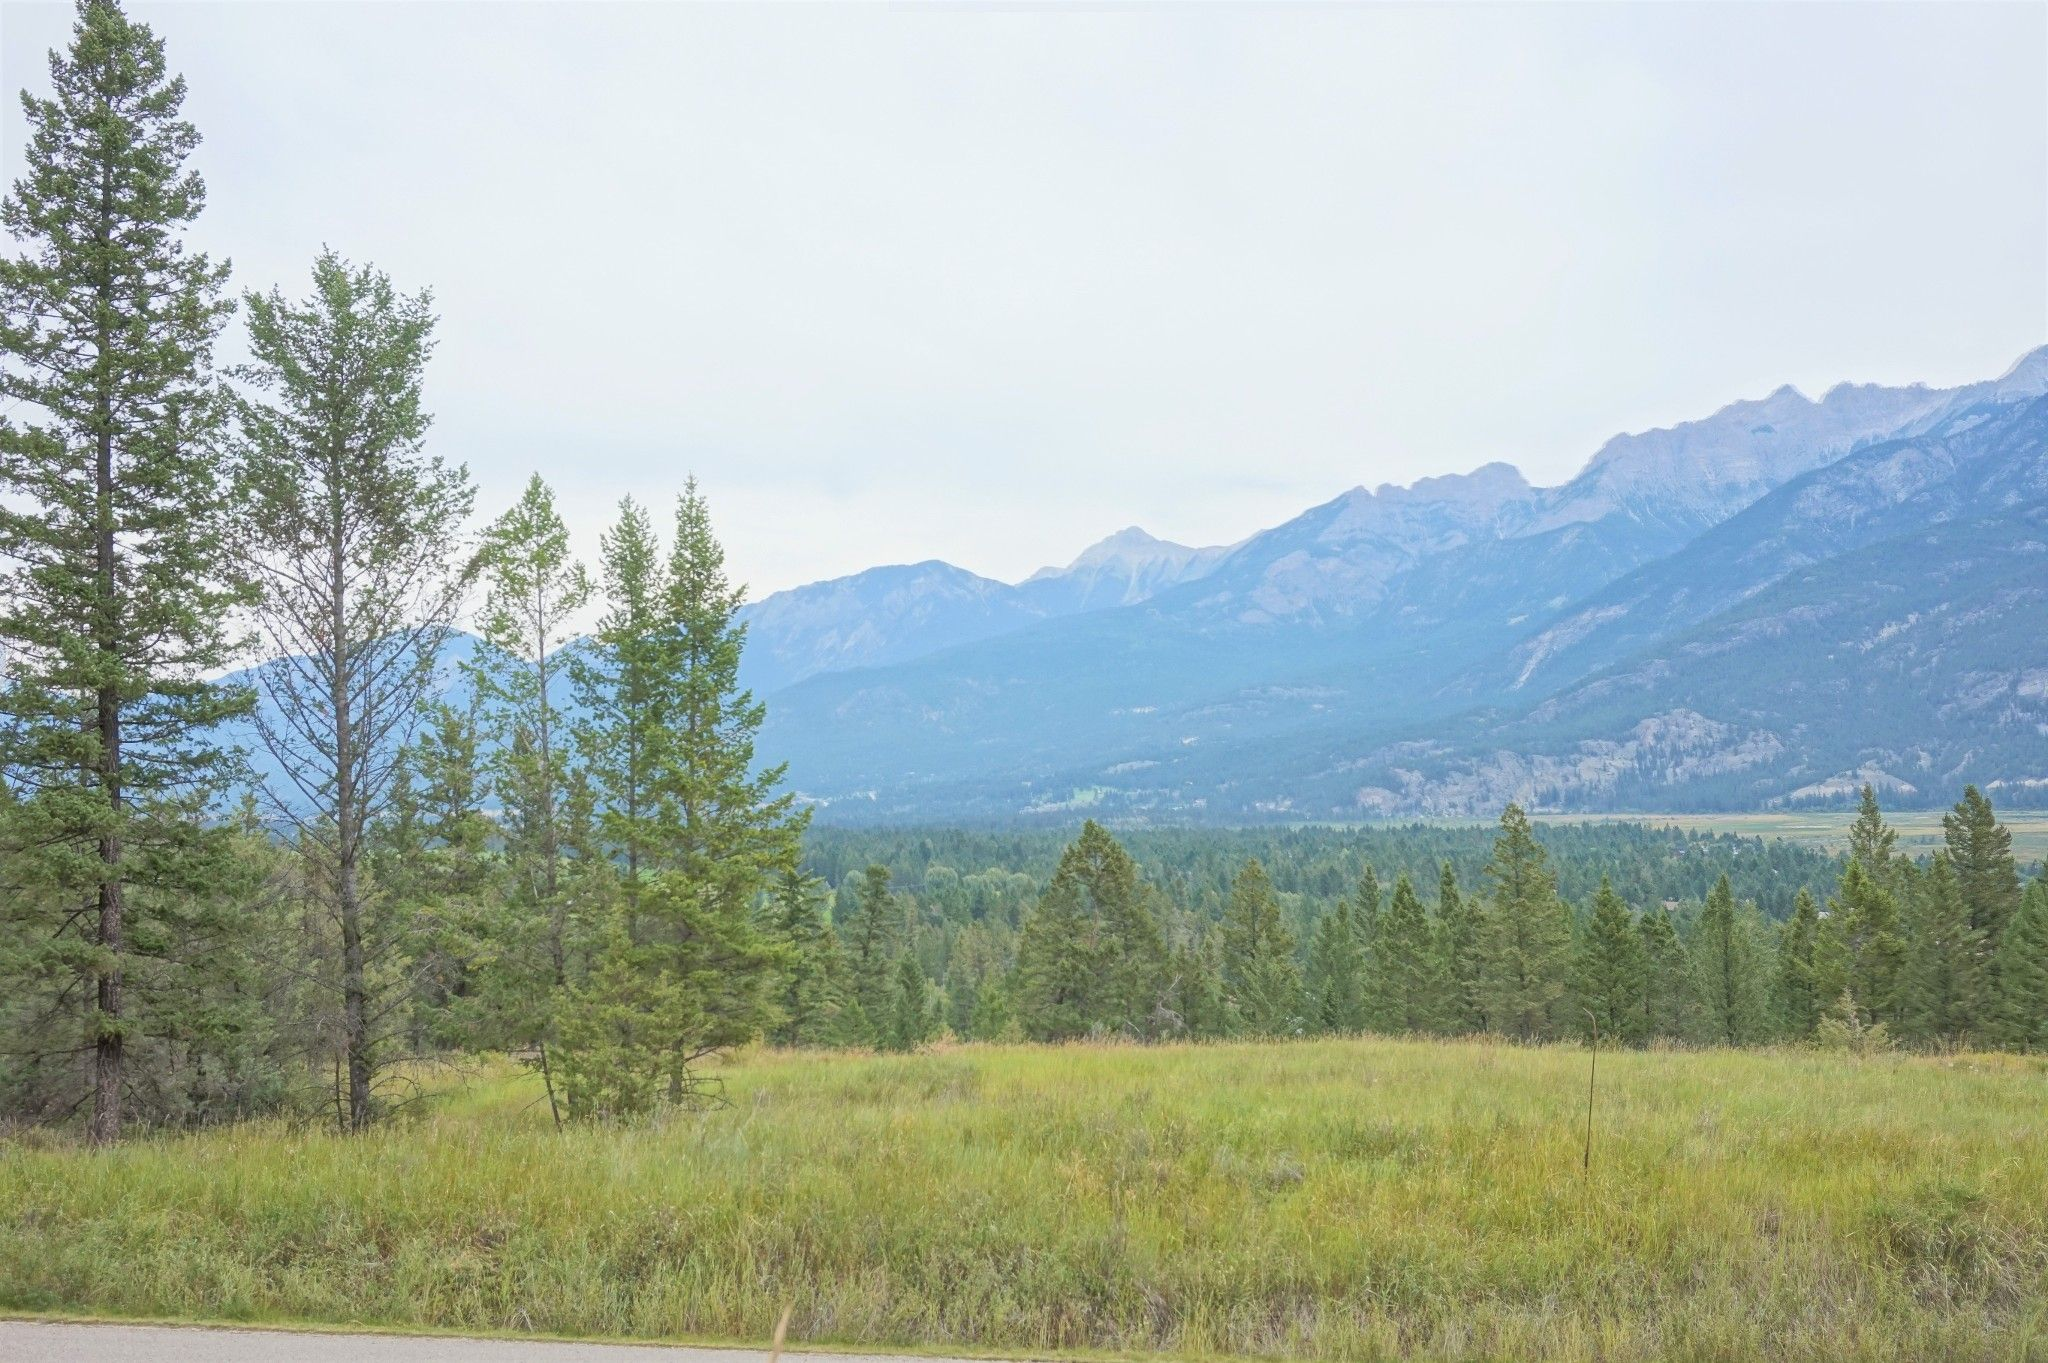 Main Photo: Lot 24 Valley Vista Way in Fairmont Hot Springs: Vacant Land for sale (Bella Vista Estates)  : MLS®# 2452799